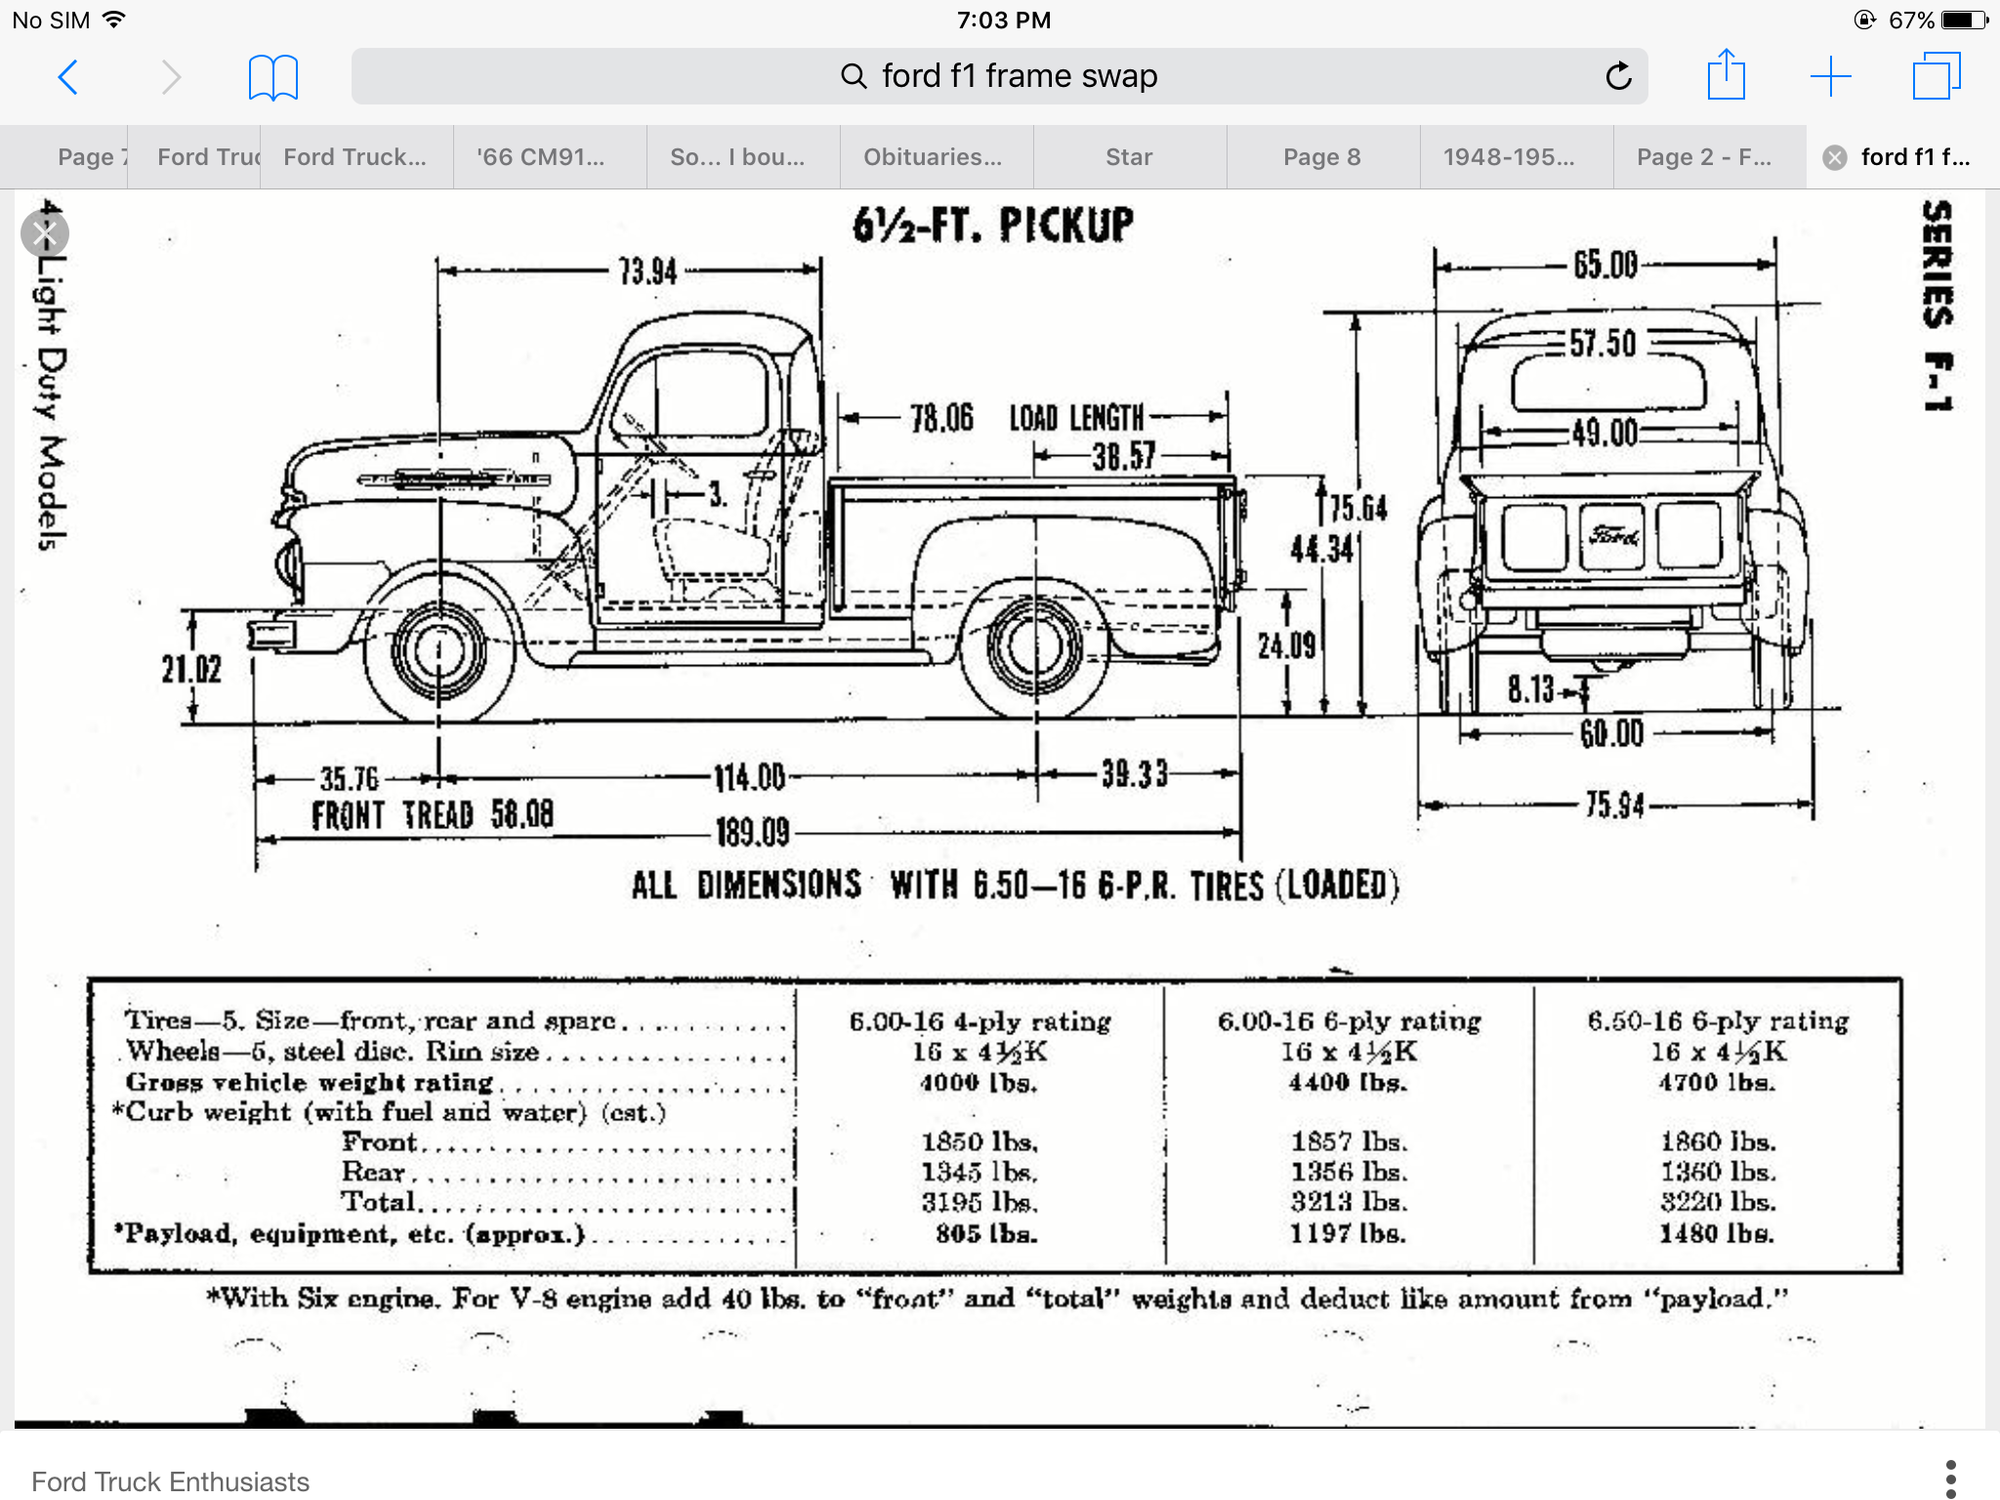 1948 1950 F1 Frame Swap Measurements Ford Truck Enthusiasts Forums 1948 Ford Truck Trucks Ford Truck